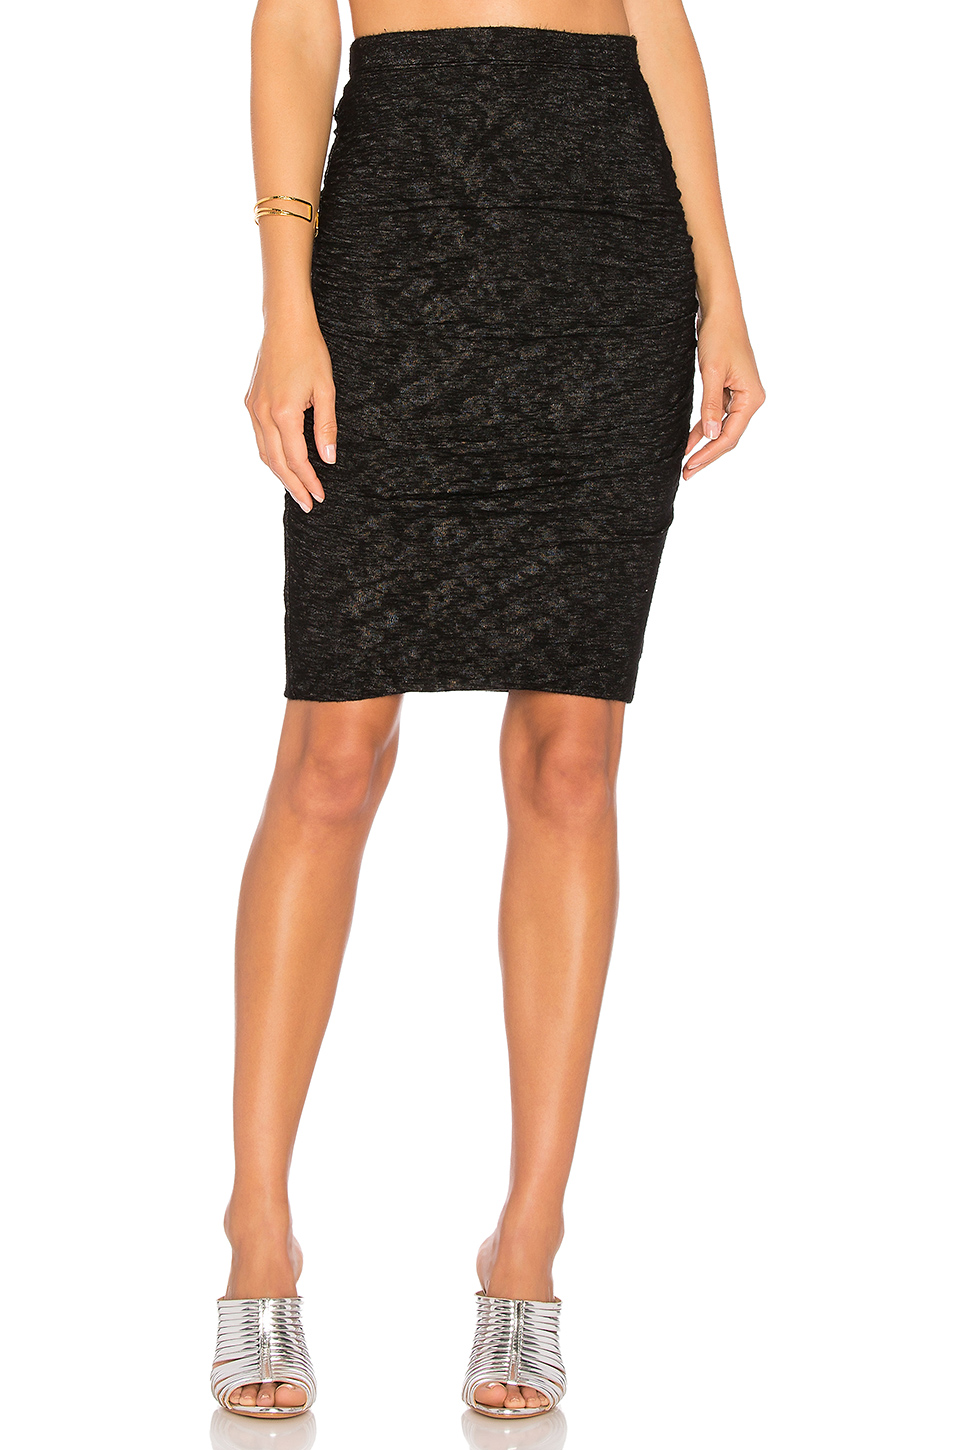 Velvet by Graham & Spencer Alva Skirt in Black